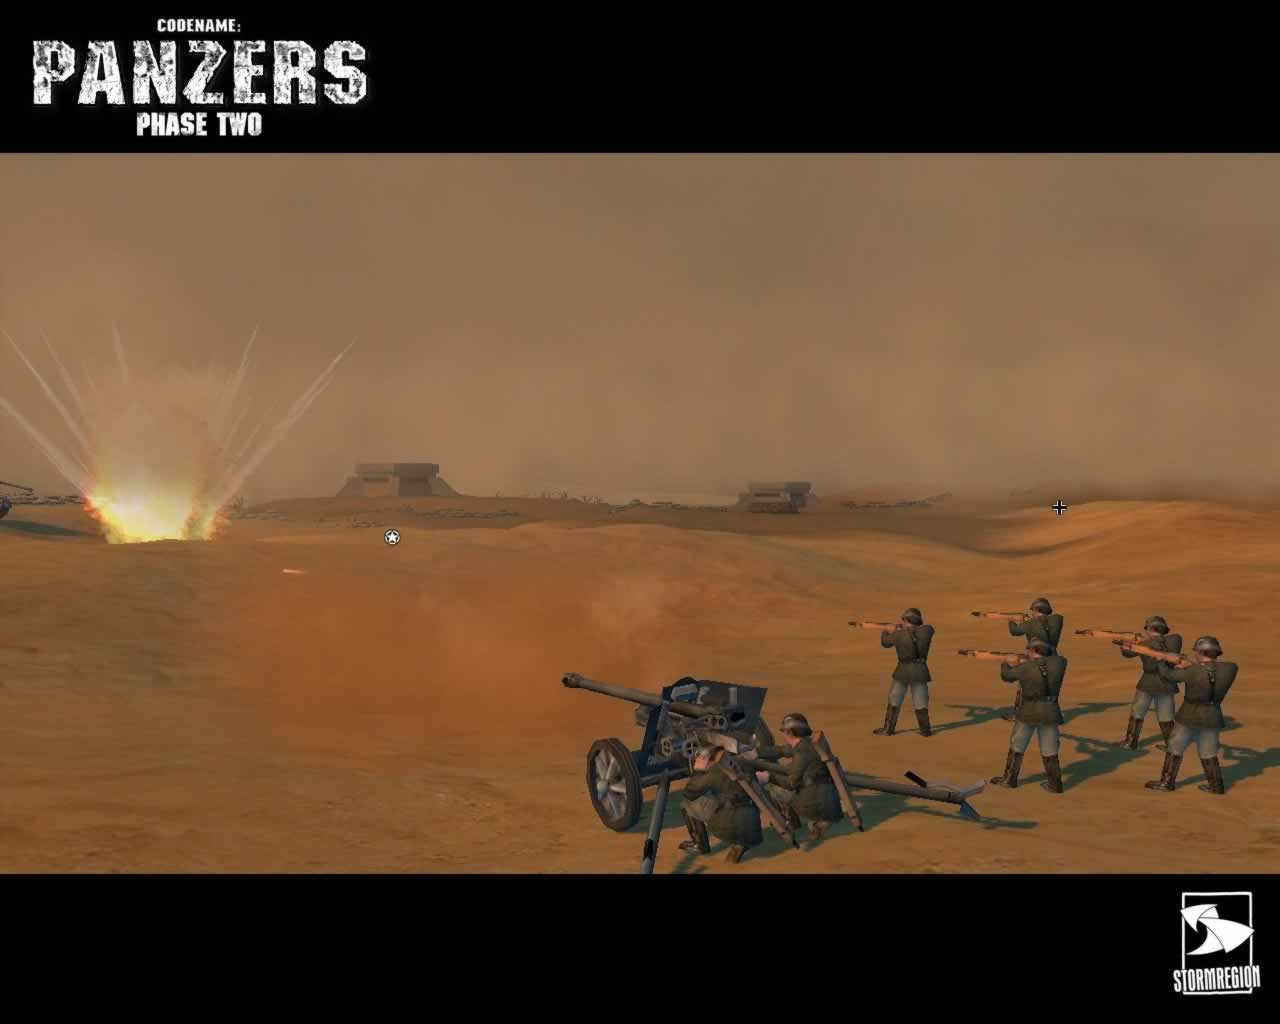 codename panzers phase two download